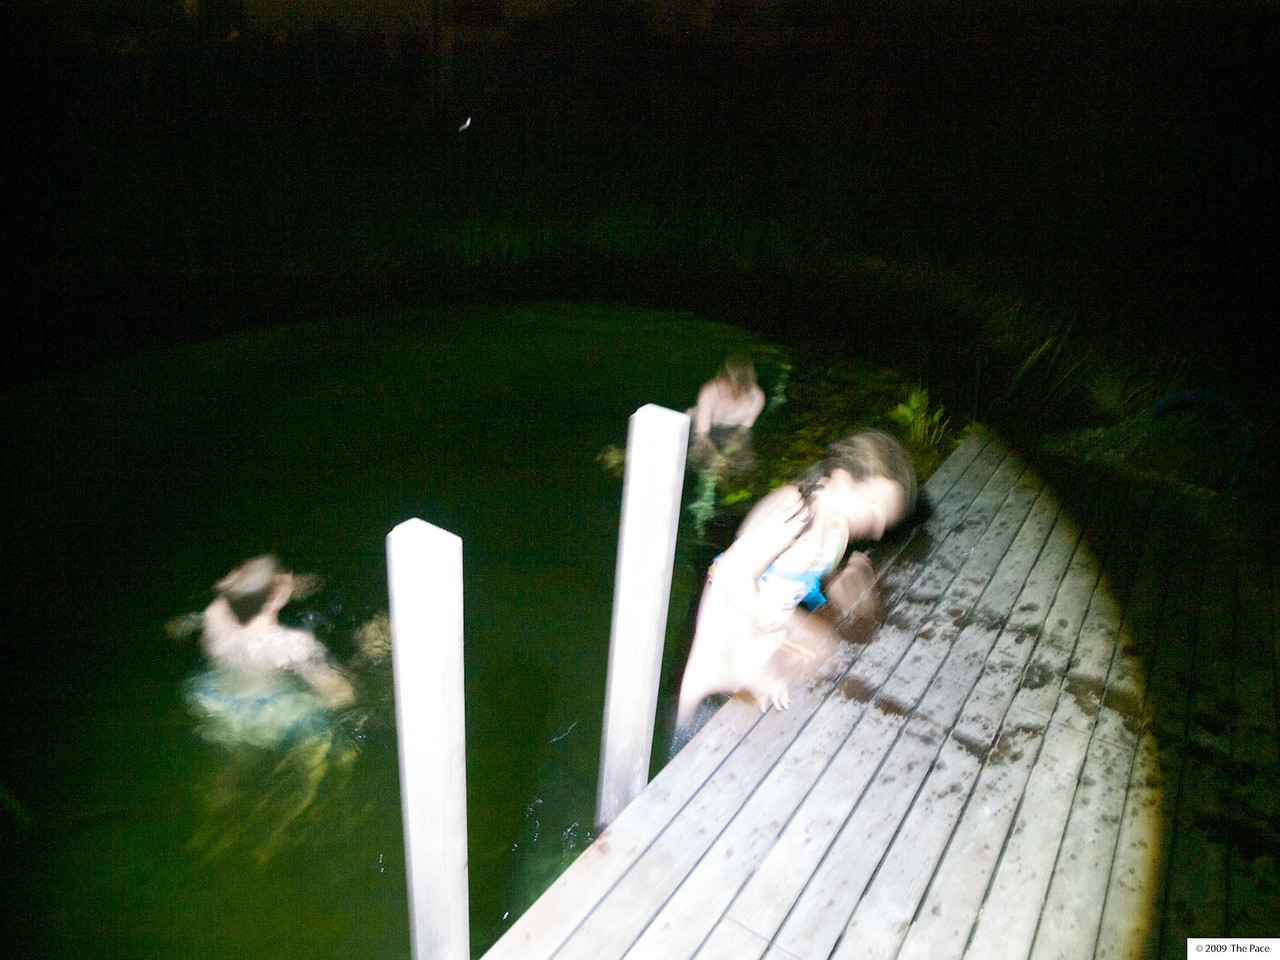 Monday 3rd August 2009 - after the fireworks what better way to cool down than a nightime swim